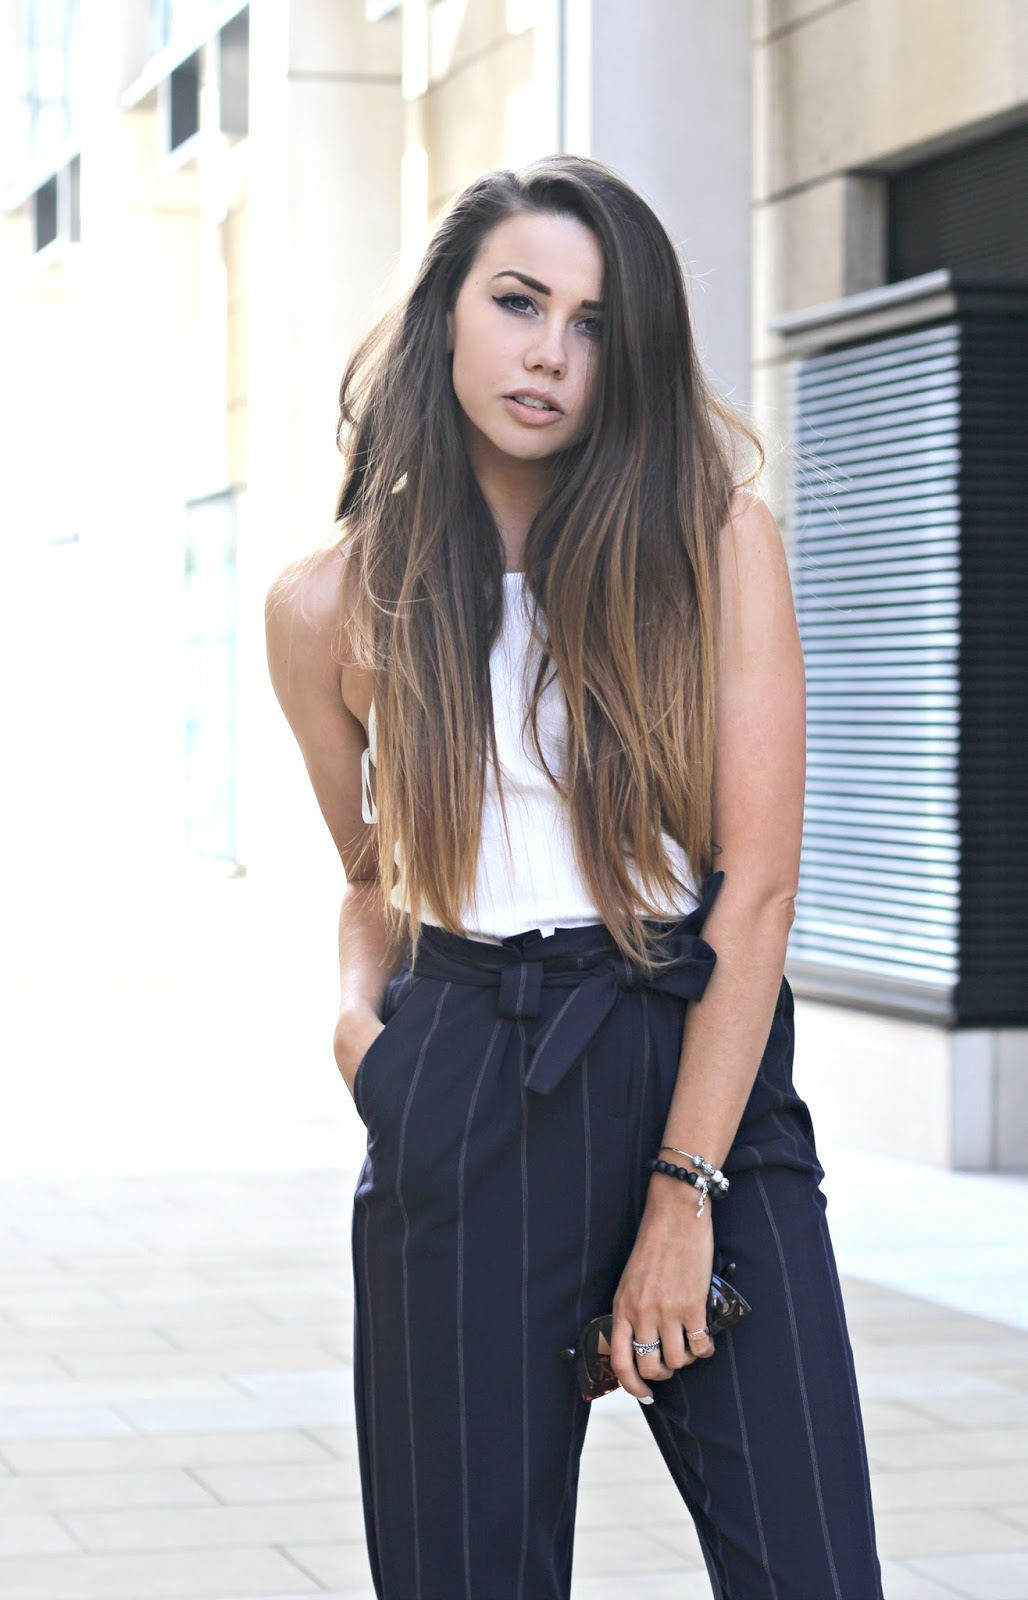 copper garden, personal style, fashion and lifestyle blogger, london bloggers, spring style, summer fashion inspo,